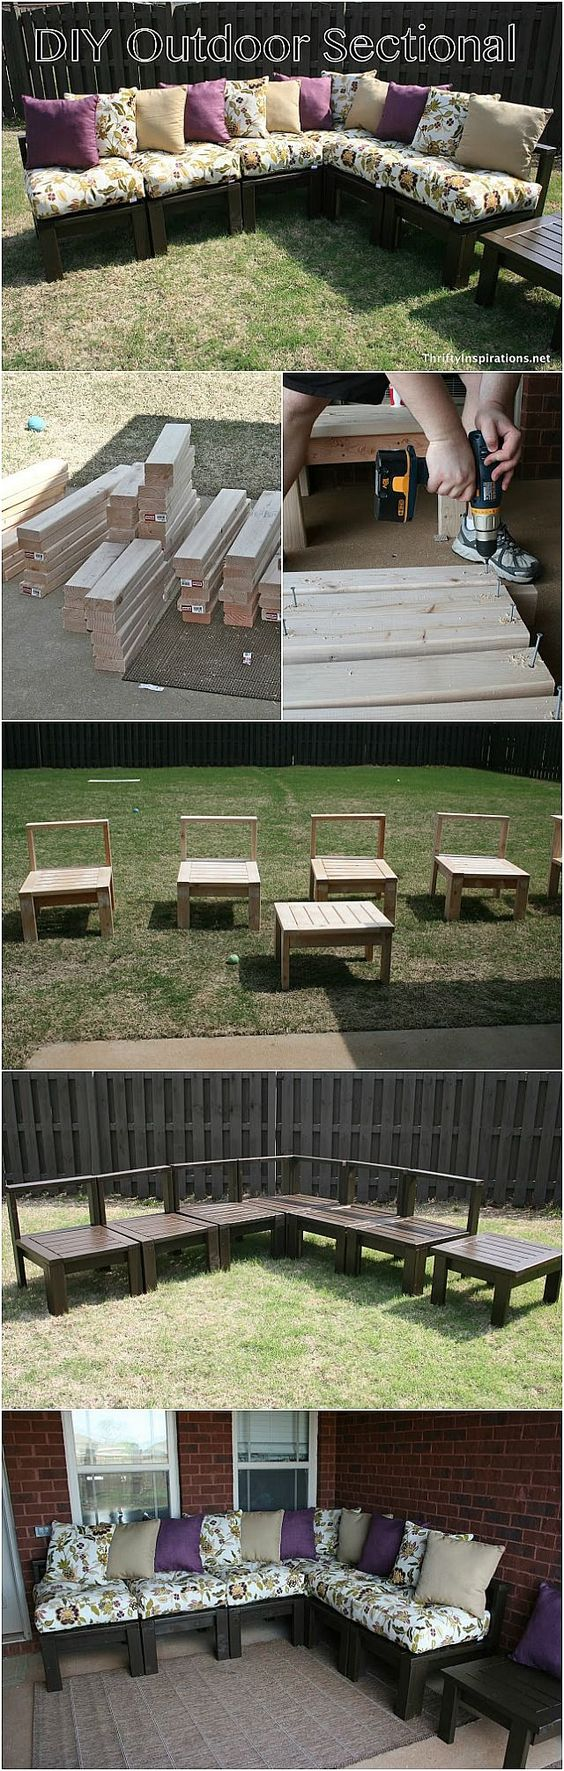 DIY Outdoor Sectional Tutorial - Pin it NOW and build it later!: